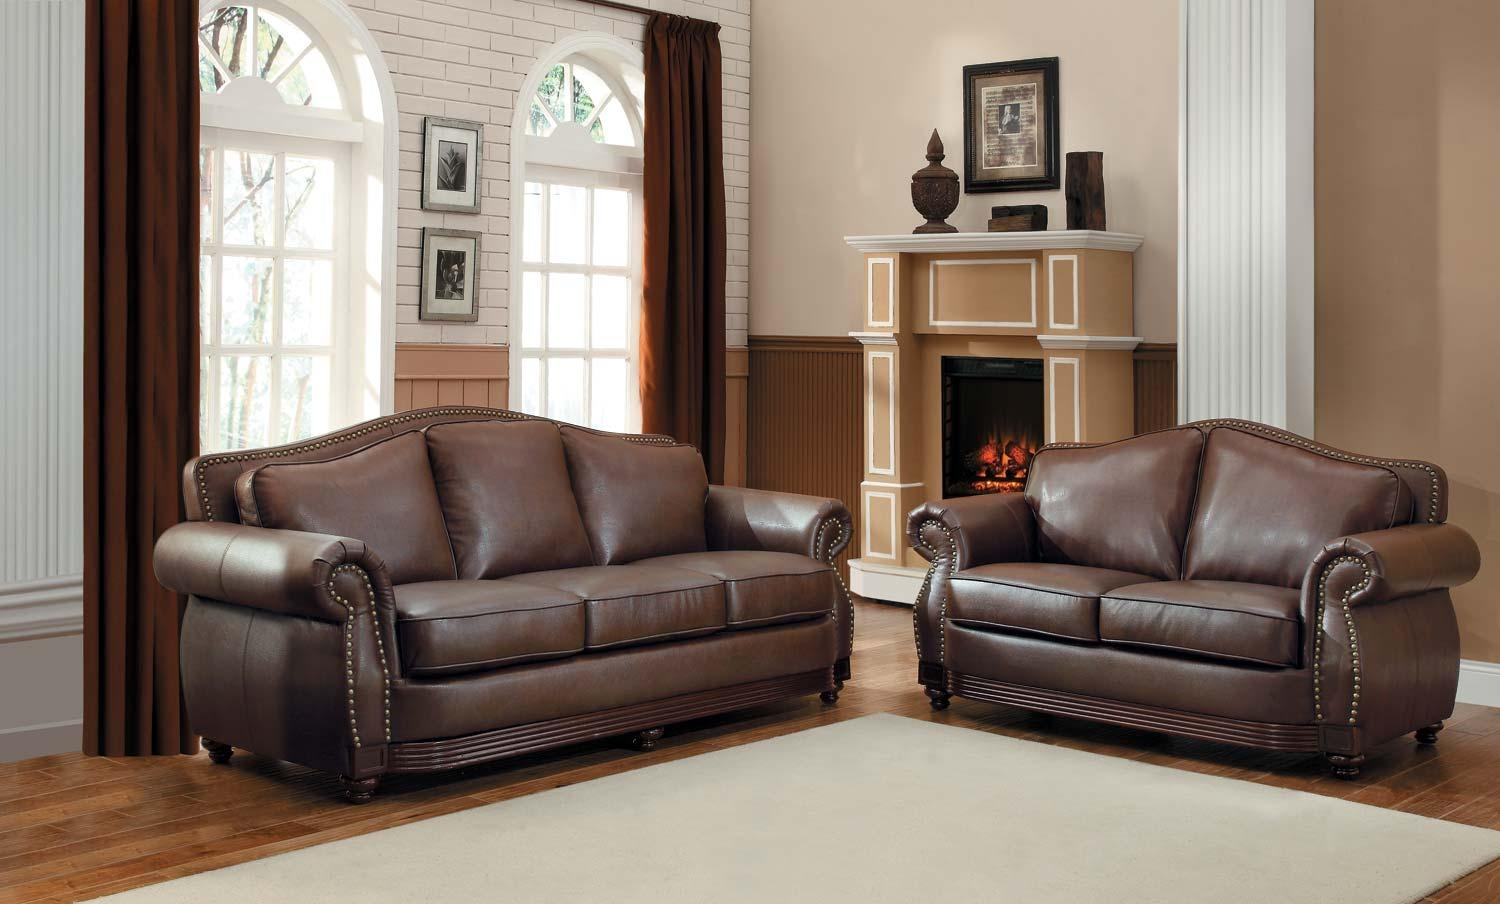 Homelegance Midwood Bonded Leather Sofa Collection – Dark Brown Intended For Bonded Leather Sofas (View 19 of 20)